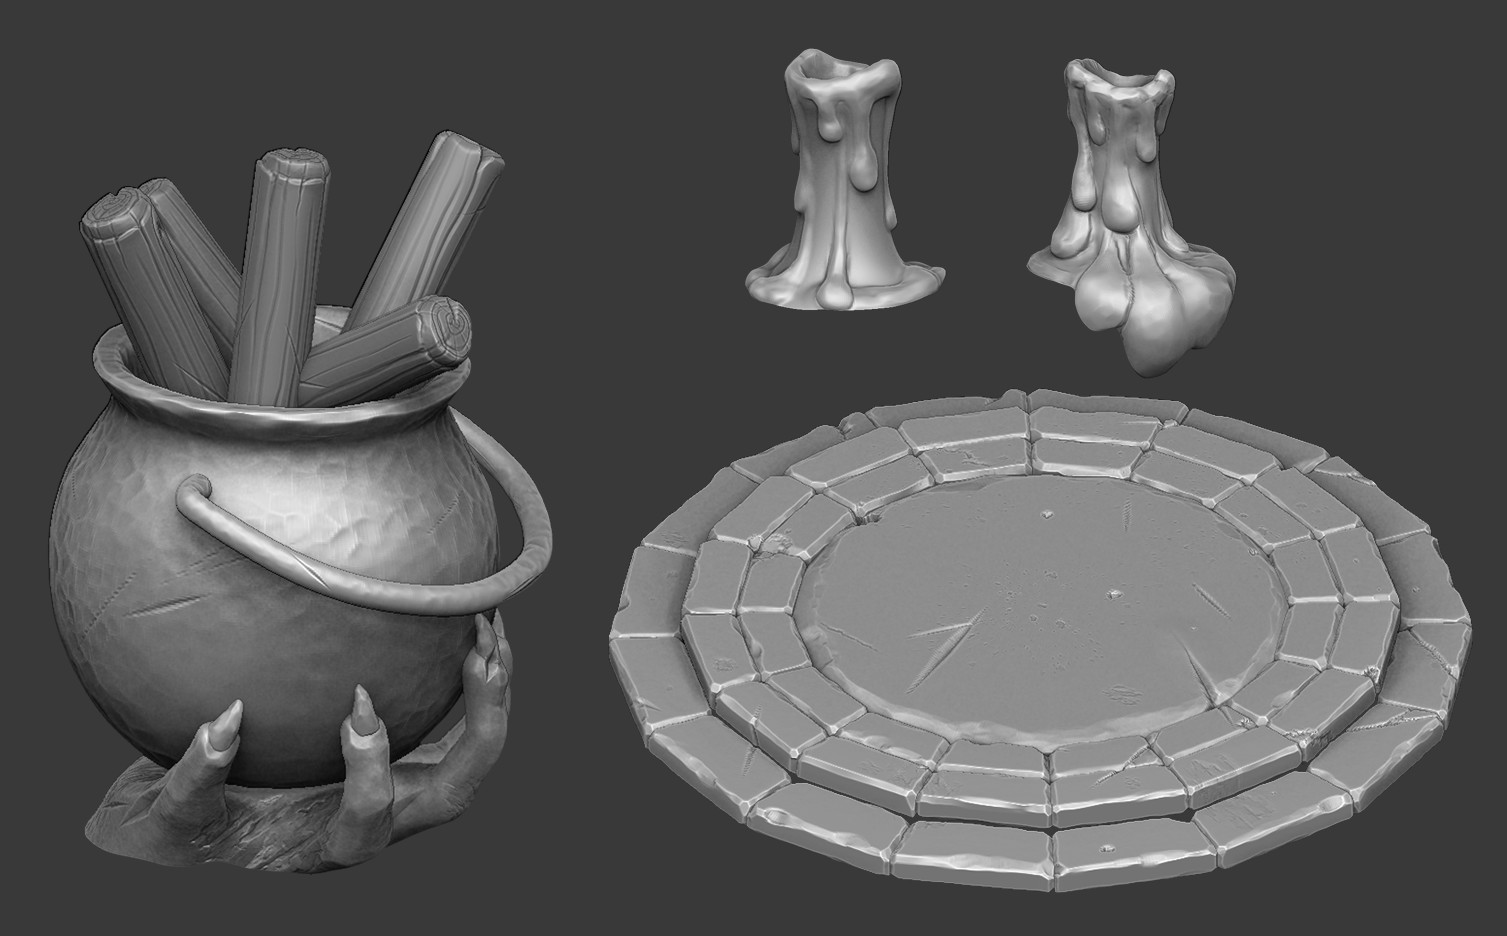 Zbrush sculpts of the props used to build the scene